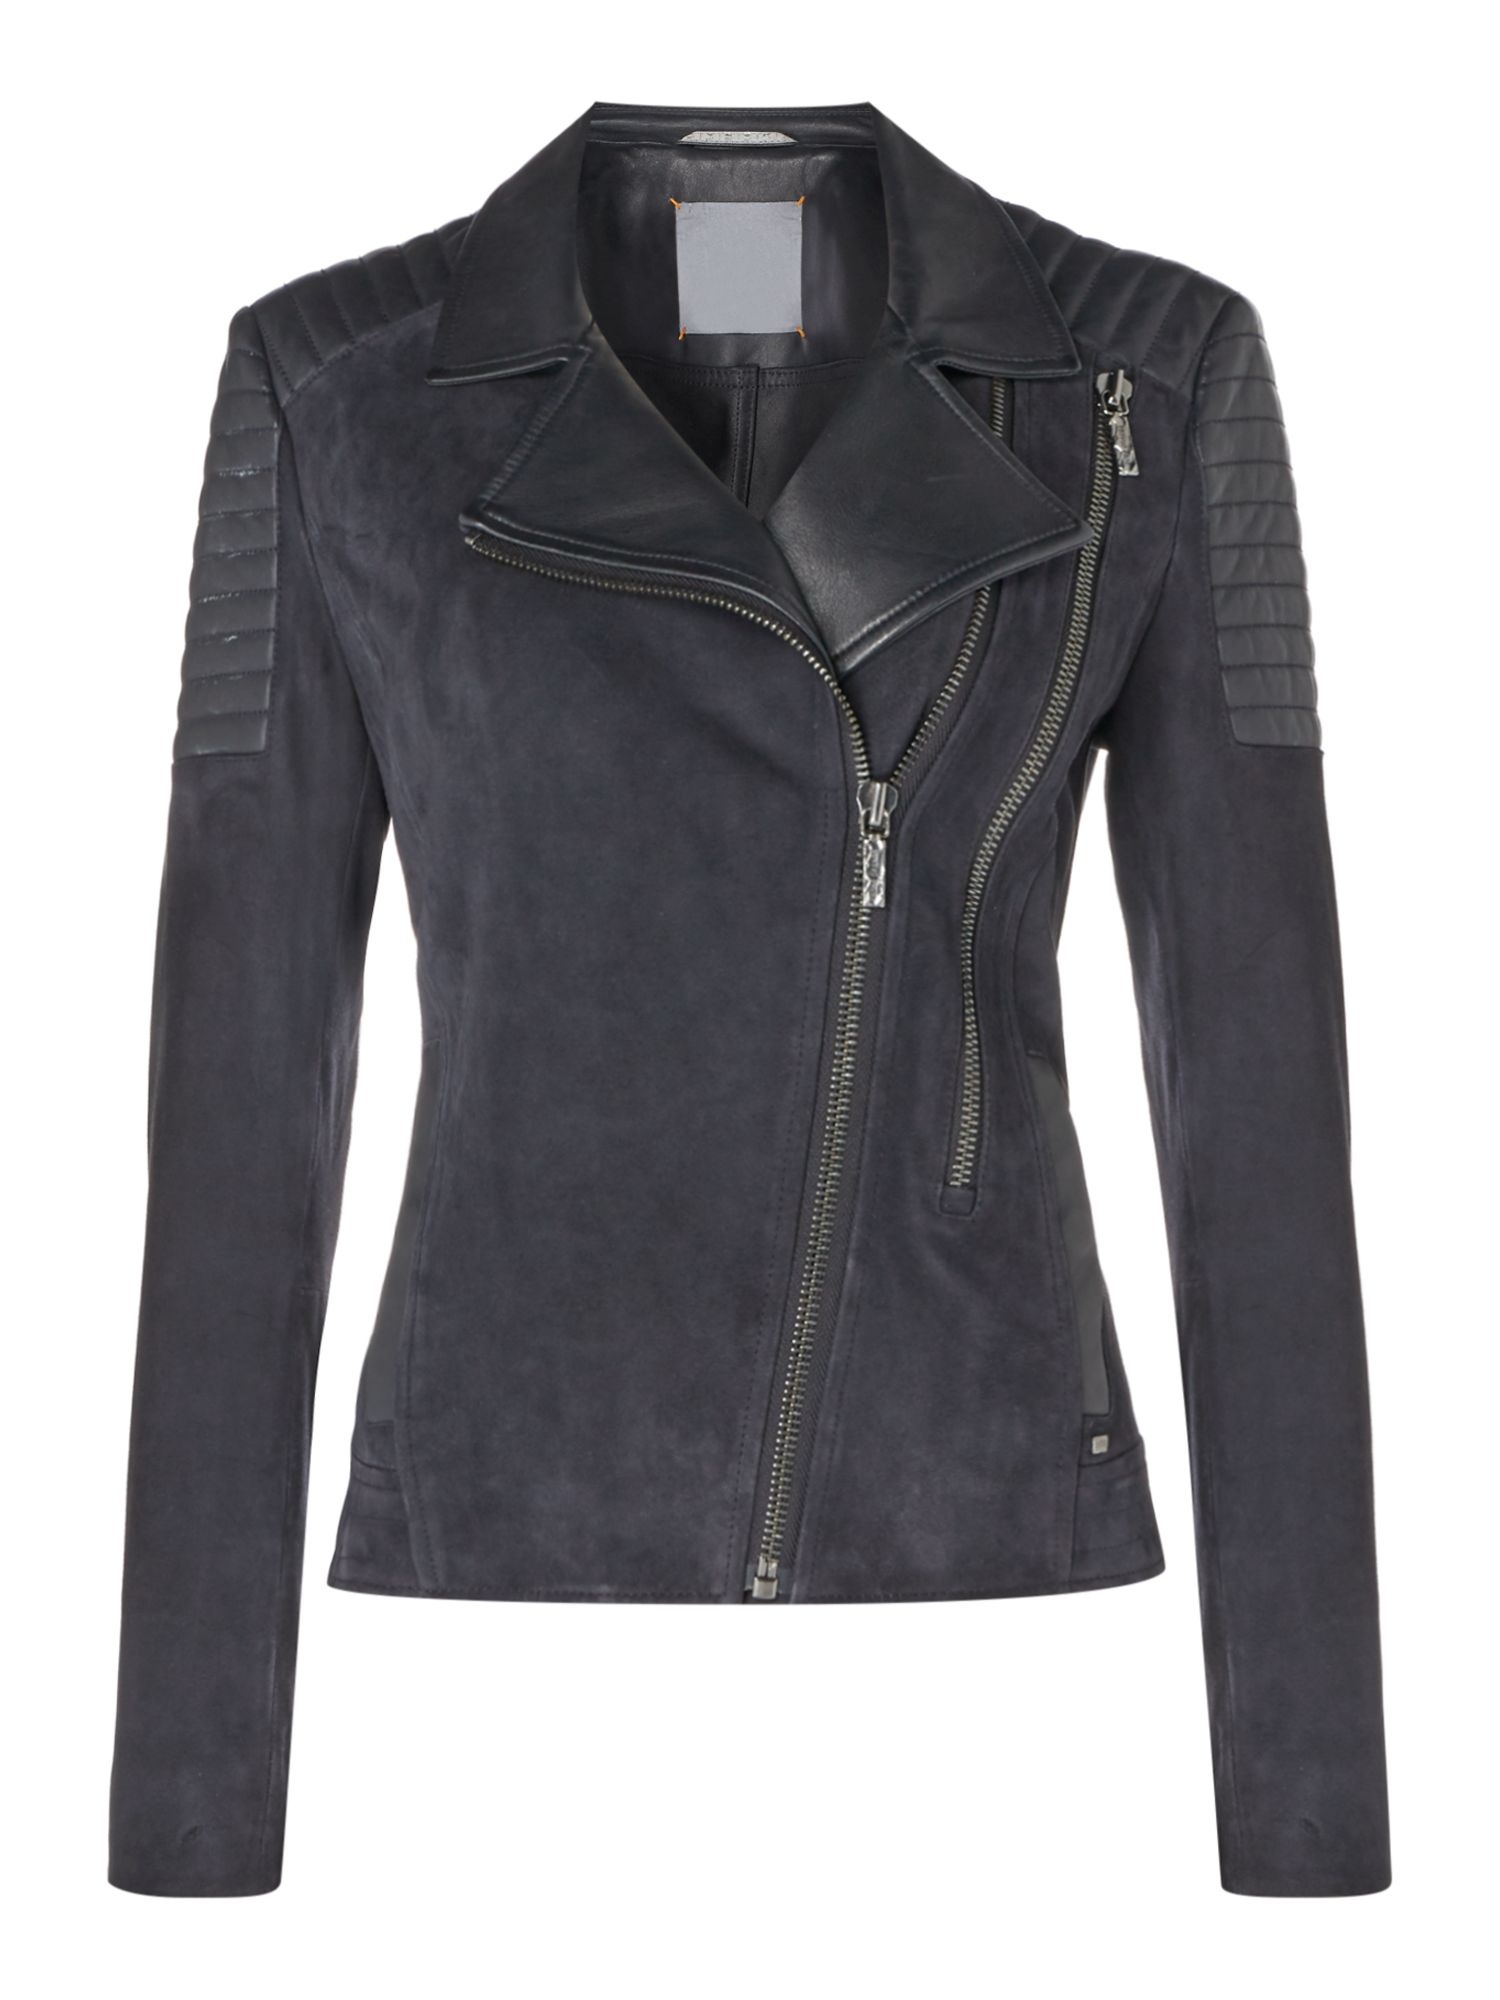 Hugo Boss Jamela 3 Leather Zip Jacket in Dark Blue, Dark Blue